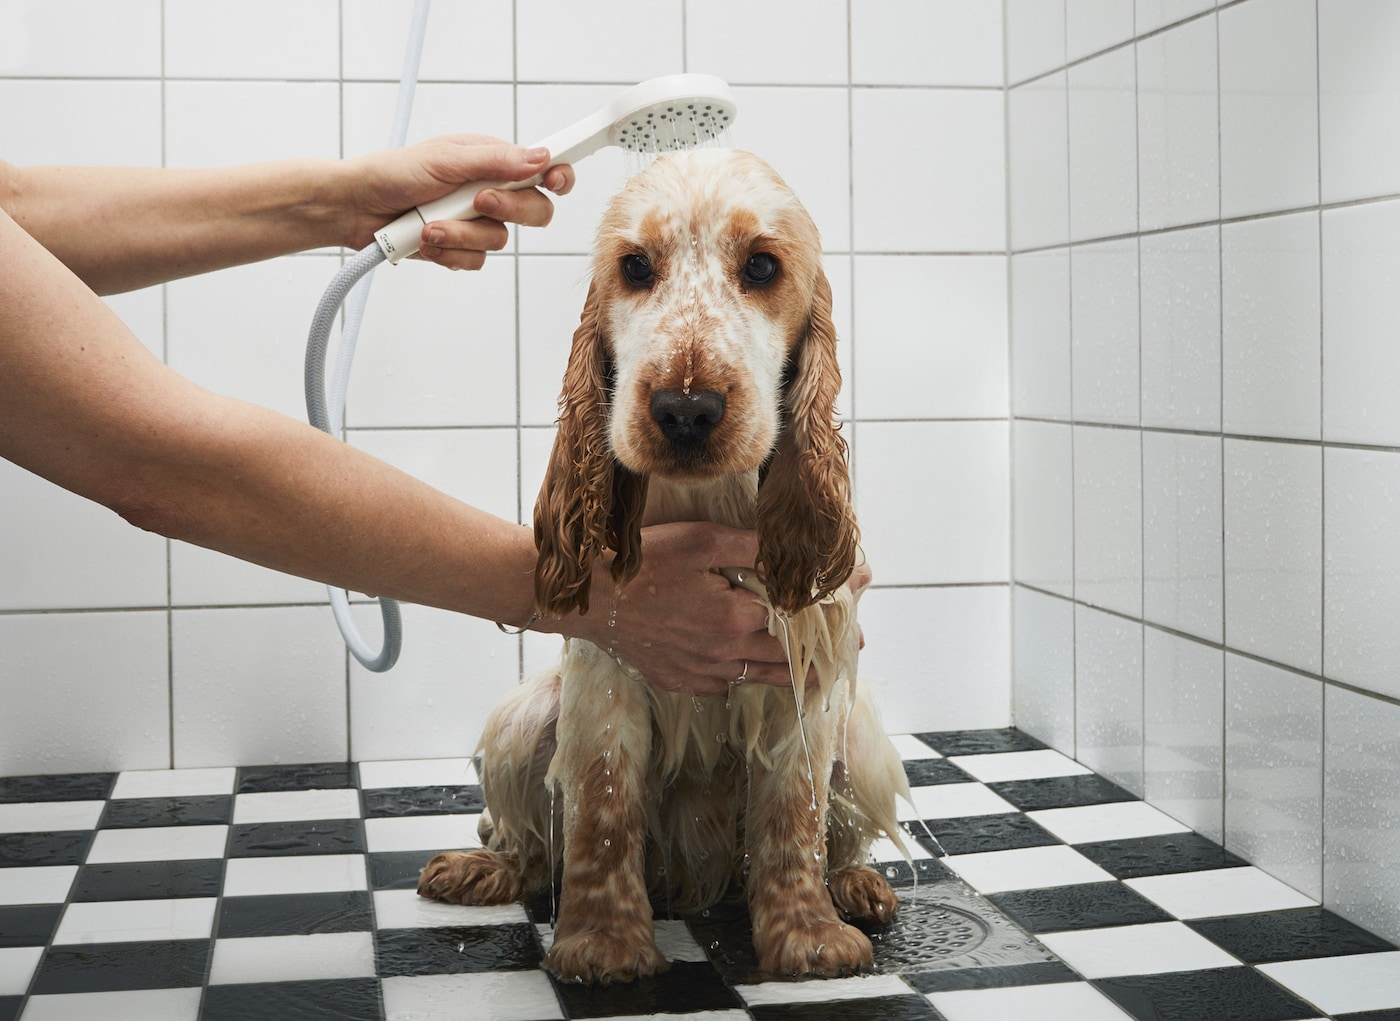 A bemused brown dog is being showered using a handheld shower head, in a black and white tiled bathroom.